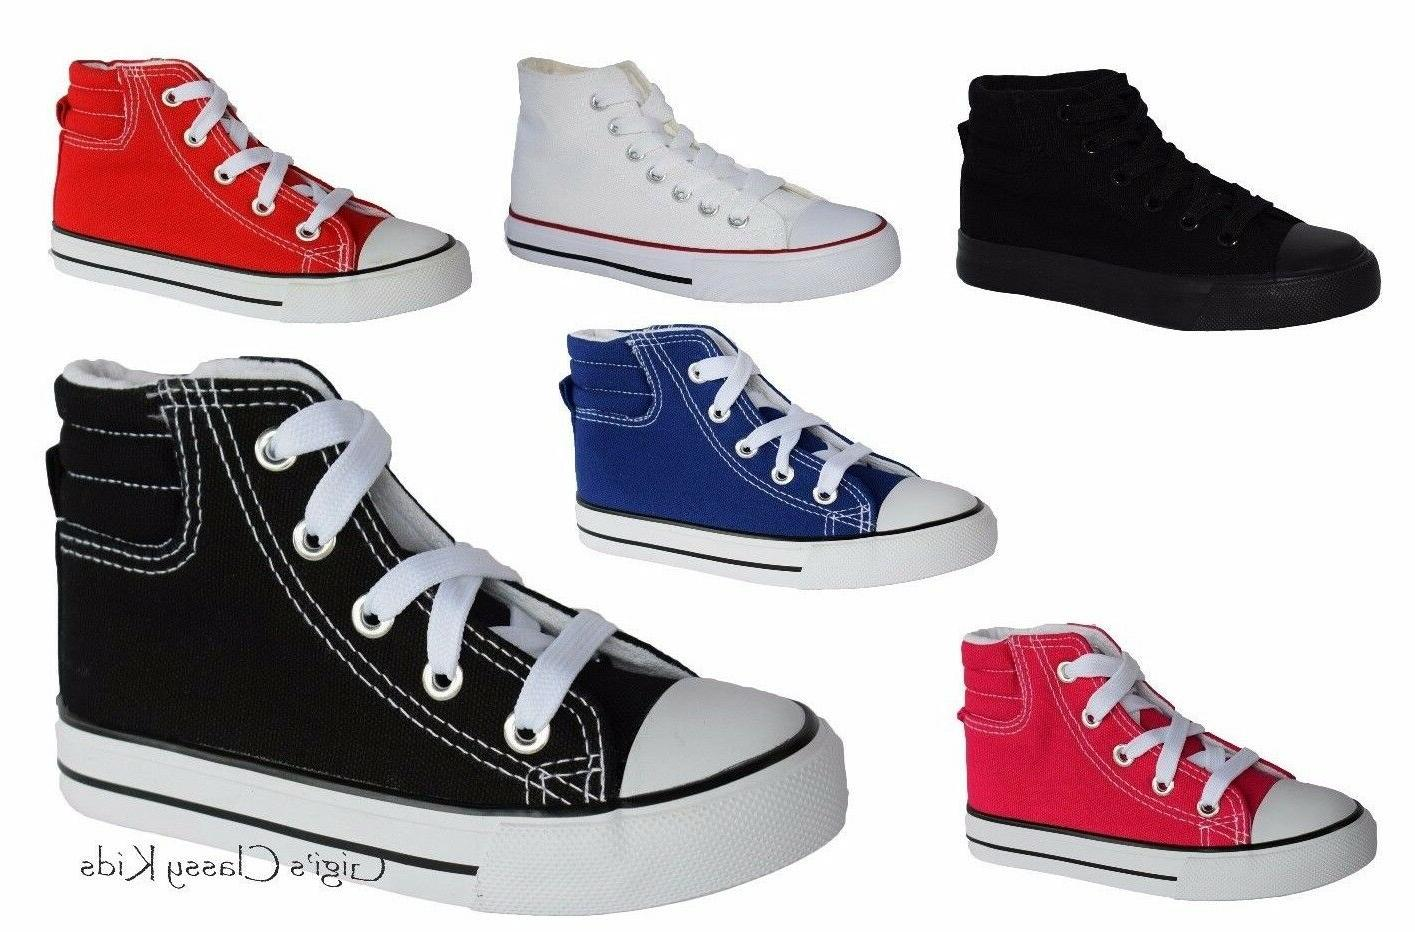 new boys girls youth canvas high top